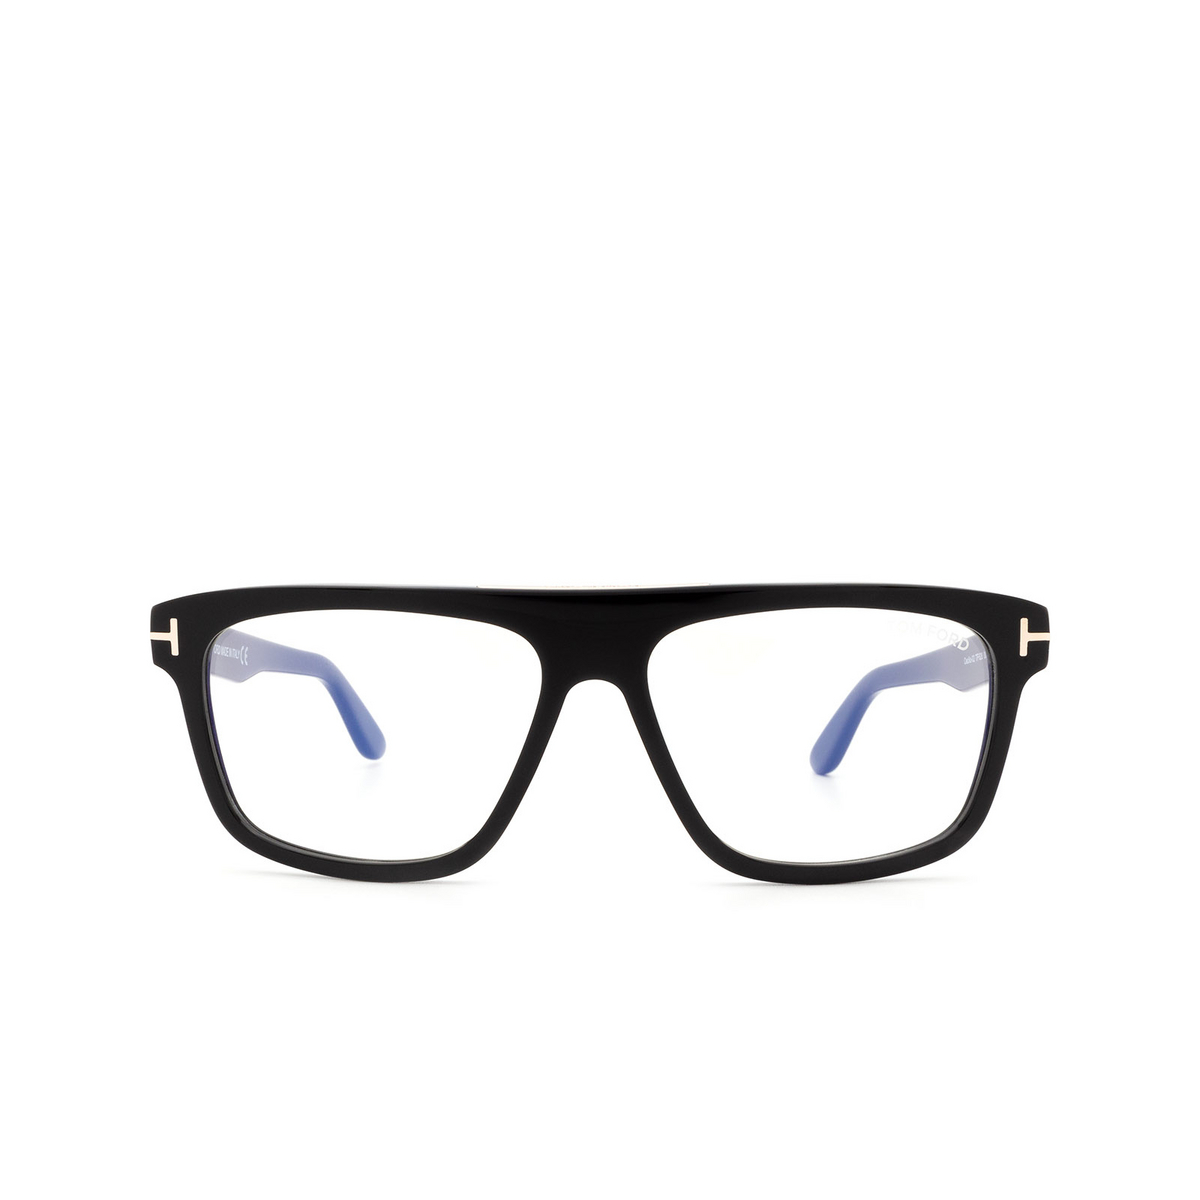 Tom Ford® Square Eyeglasses: Cecilio-02 FT0628 color Shiny Black 001 - front view.